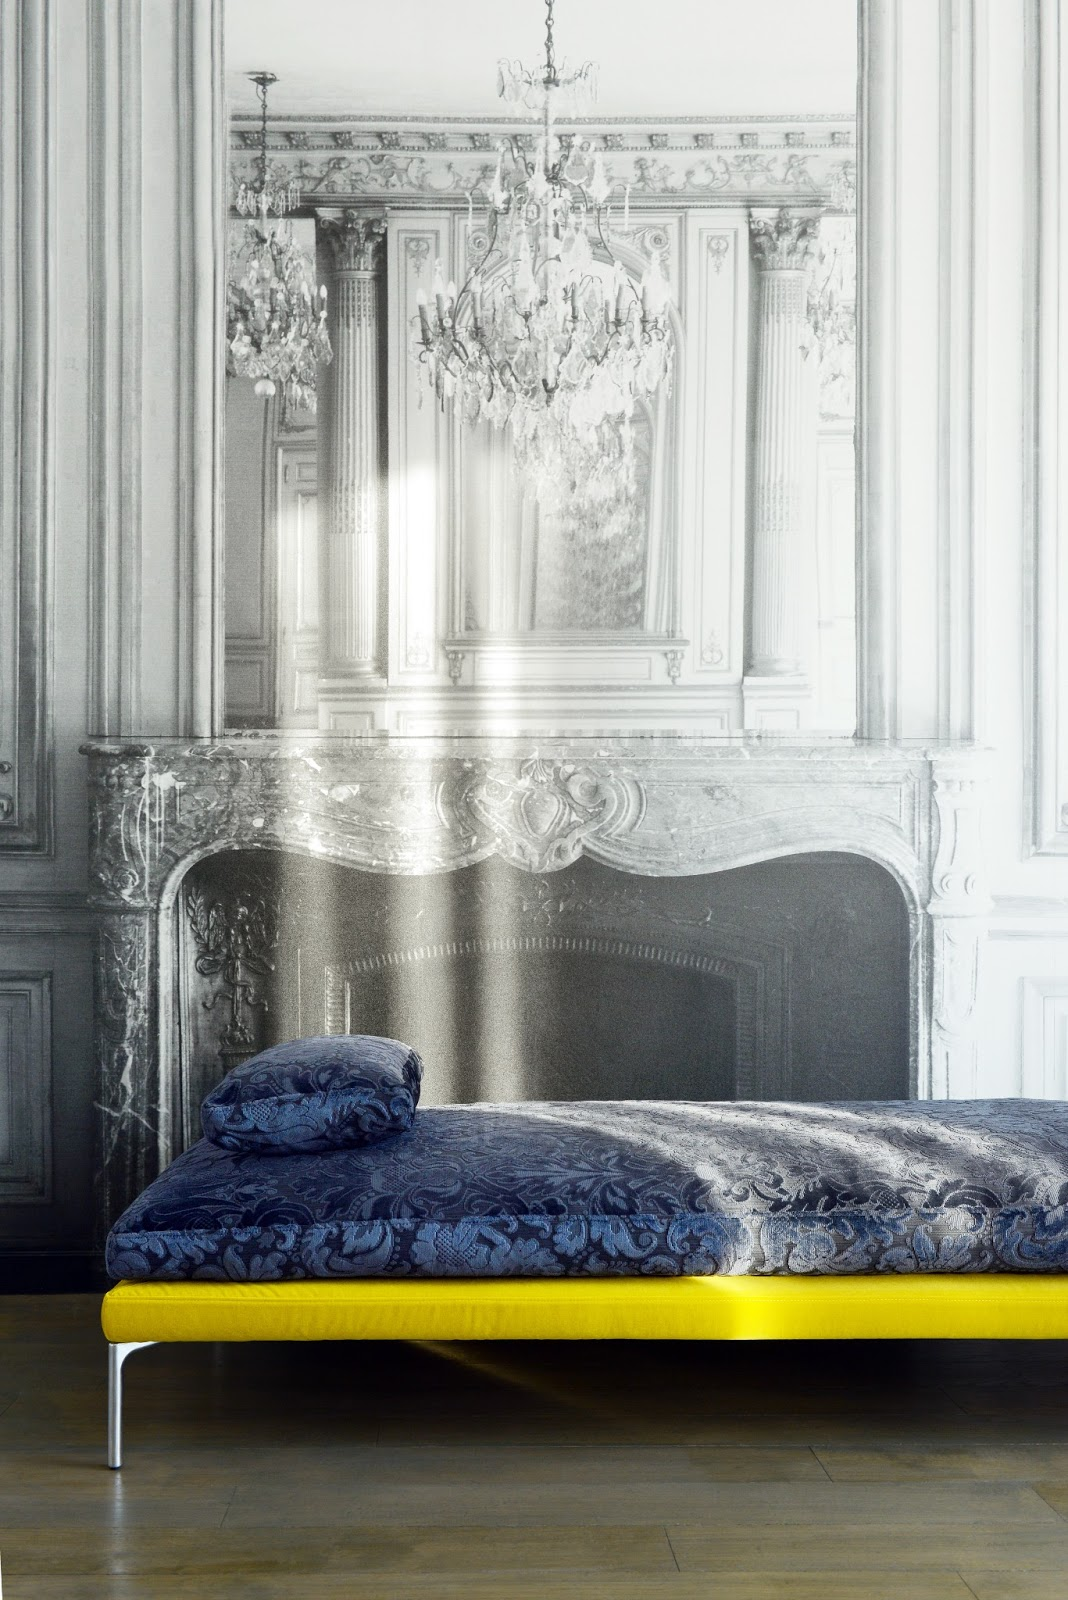 atelier rue verte le blog leli vre dite j p gaultier sonia rykiel et bien d 39 autres paris. Black Bedroom Furniture Sets. Home Design Ideas